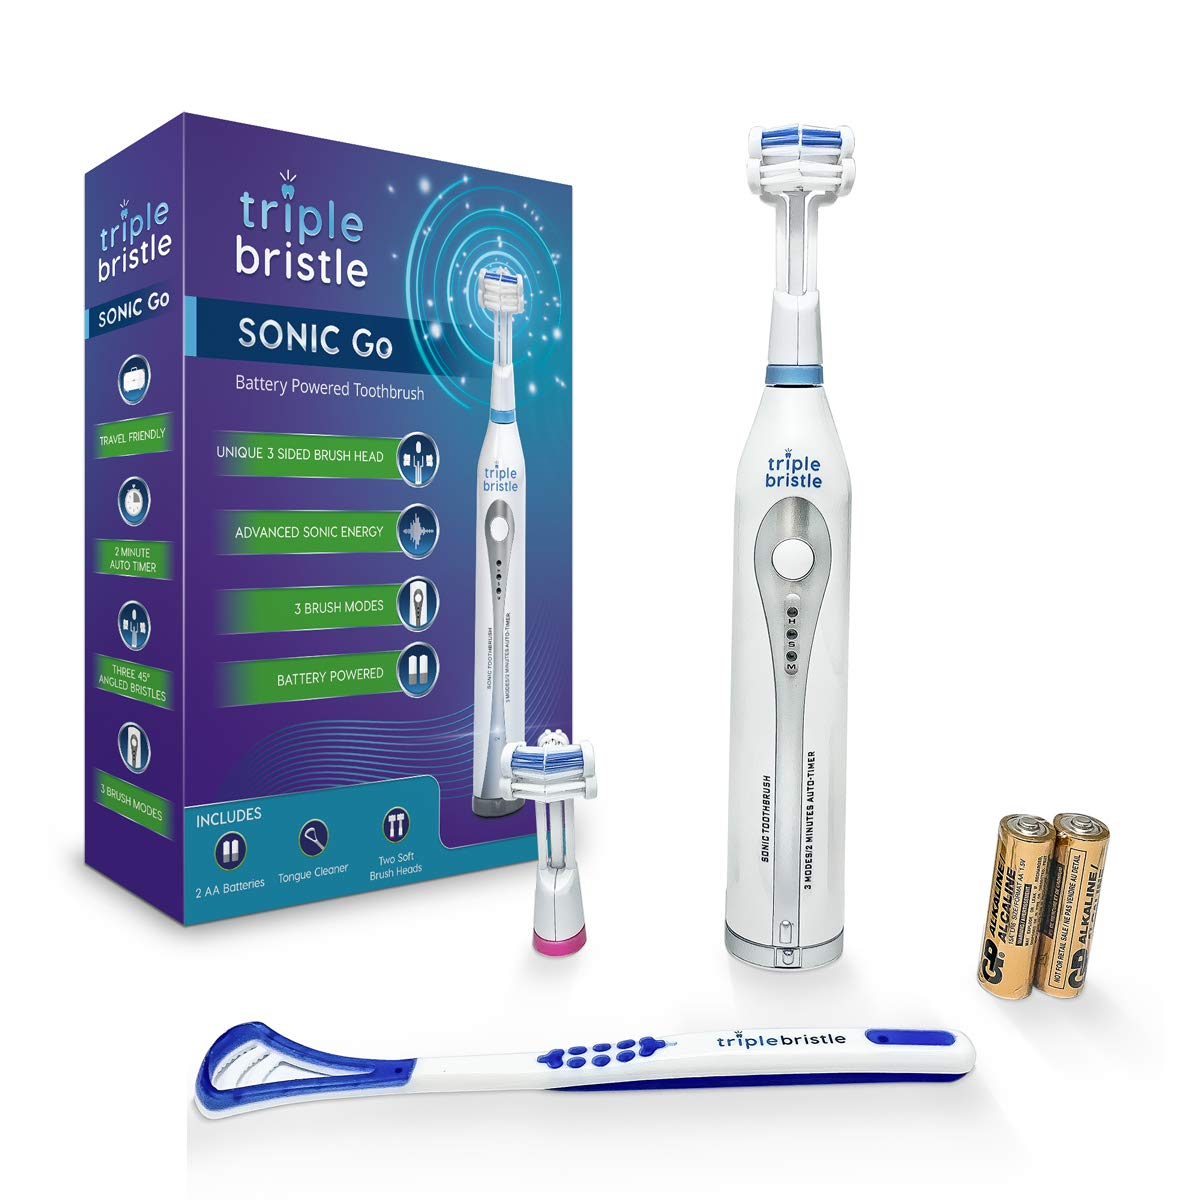 Triple Bristle Travel Sonic Toothbrush – AA Battery Electric Portable – Three Powerful Modes -Soft Nylon Bristles-Also For Autistic Special Needs Adults and Kids Triple Bristle Go